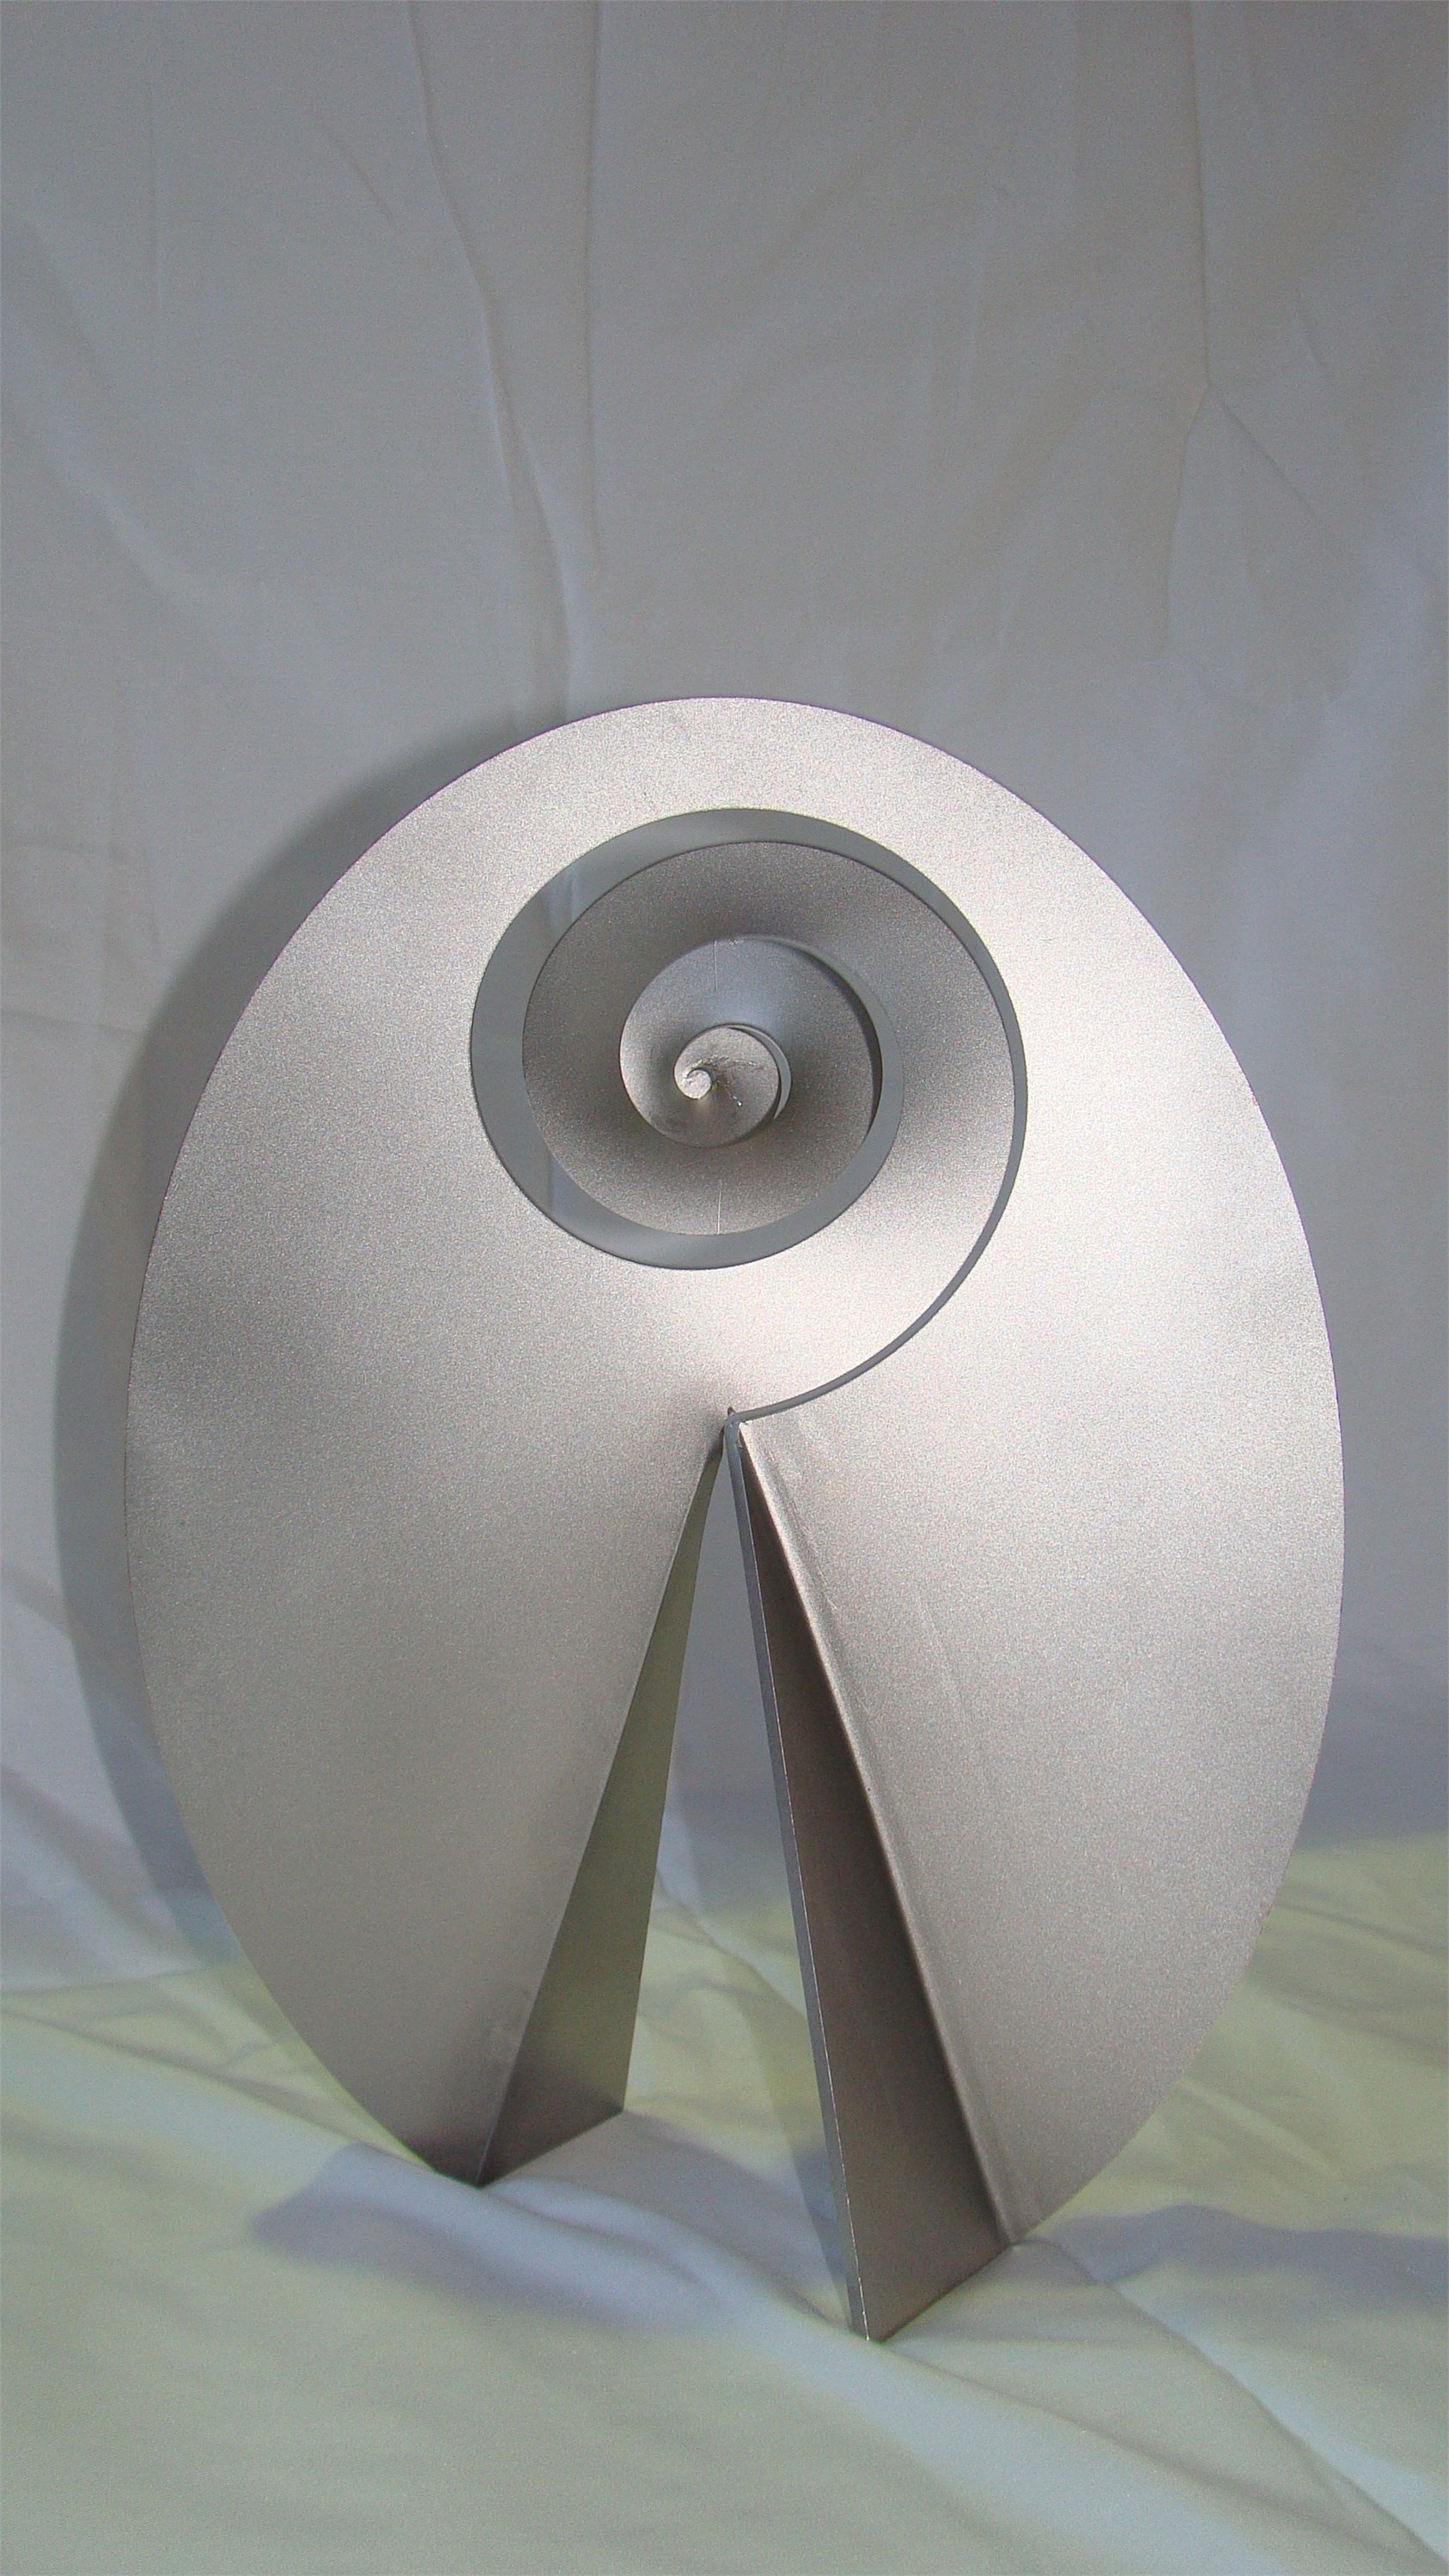 Carrapicho ó vento mareiro (Descomposición del óvalo), original Abstract Metal Sculpture by Juan Coruxo